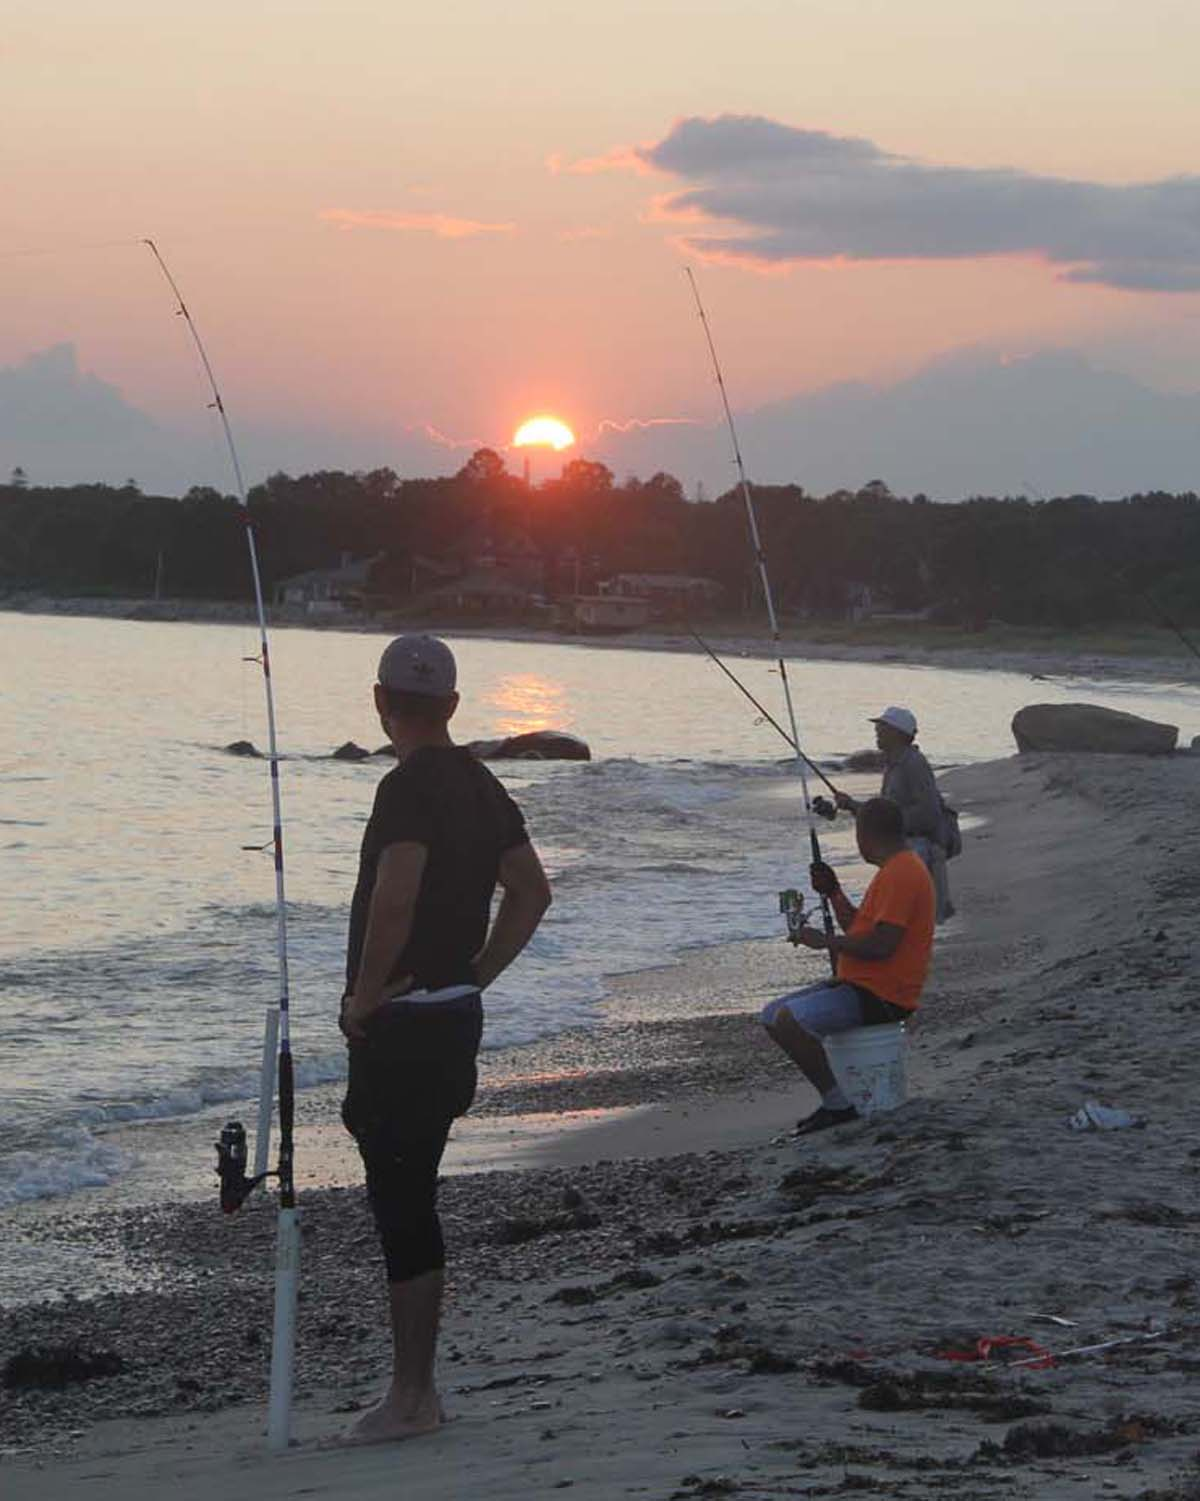 Fishermen with surf-casting poles watch the setting sun from the beach at Harkness Memorial State Park in Waterford on Aug. 22.